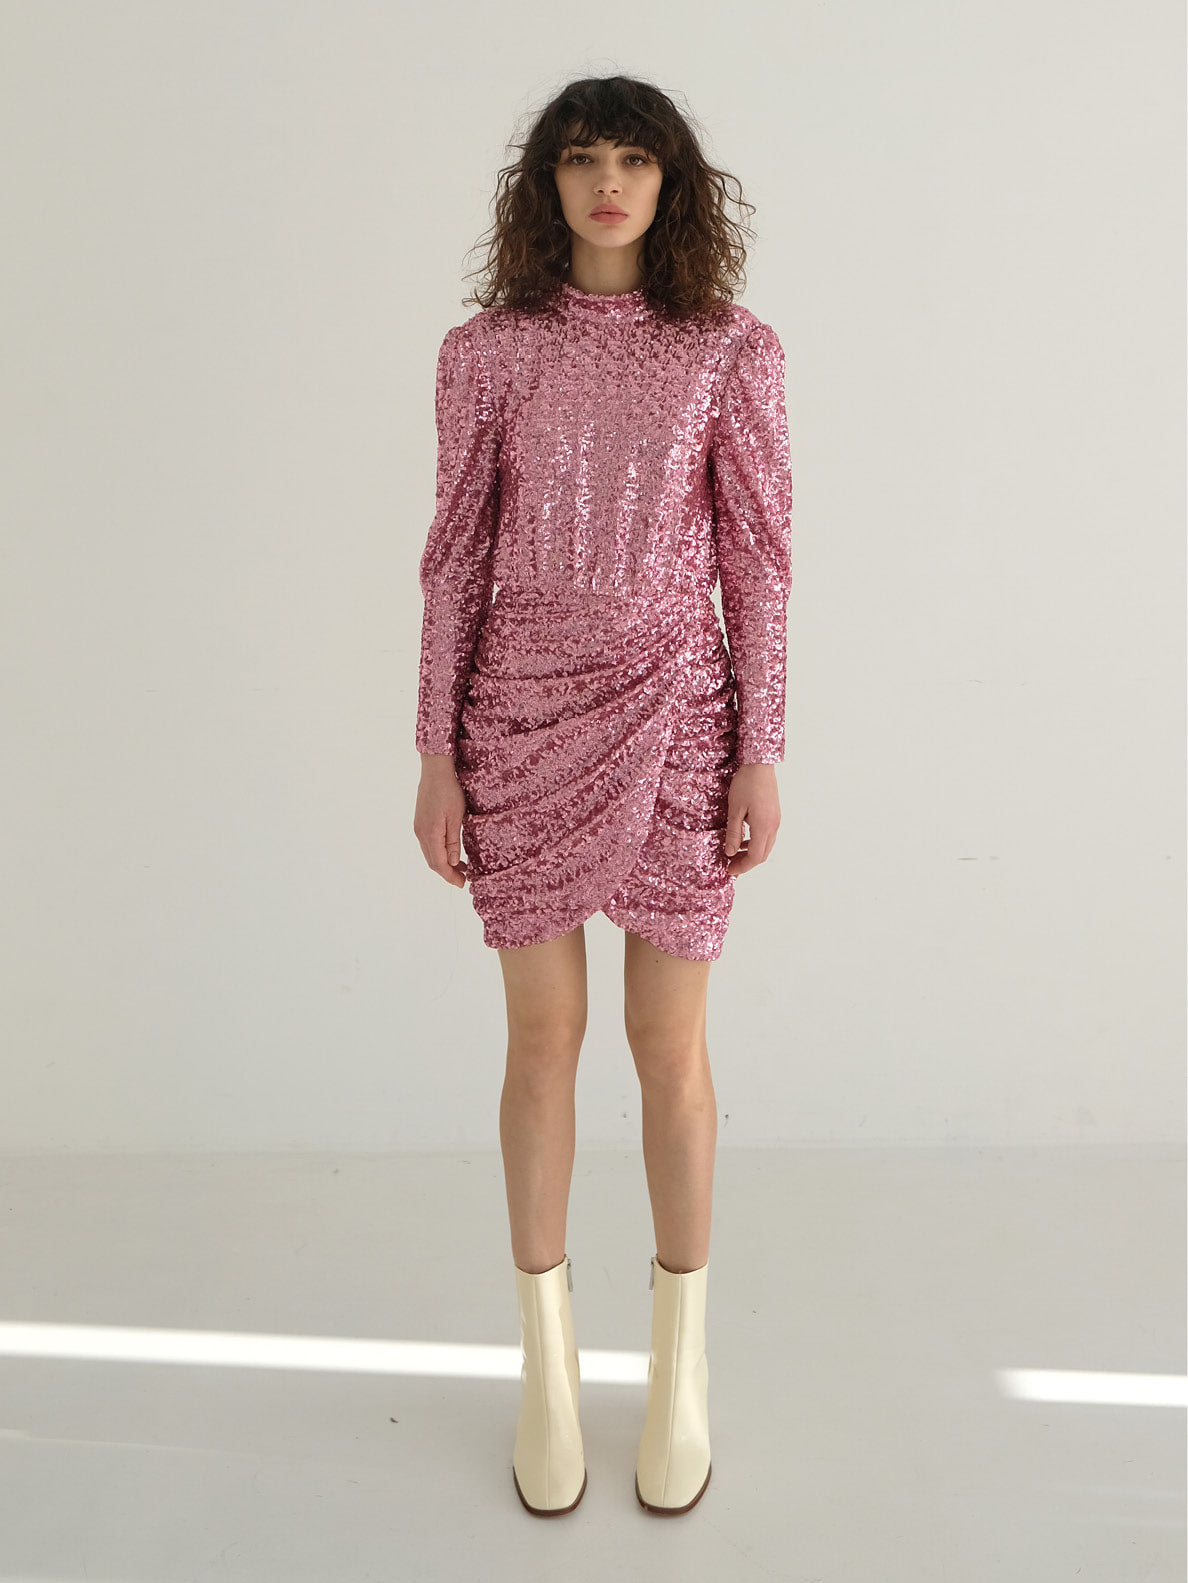 ROSE BACKLESS SEQUINED DRESS